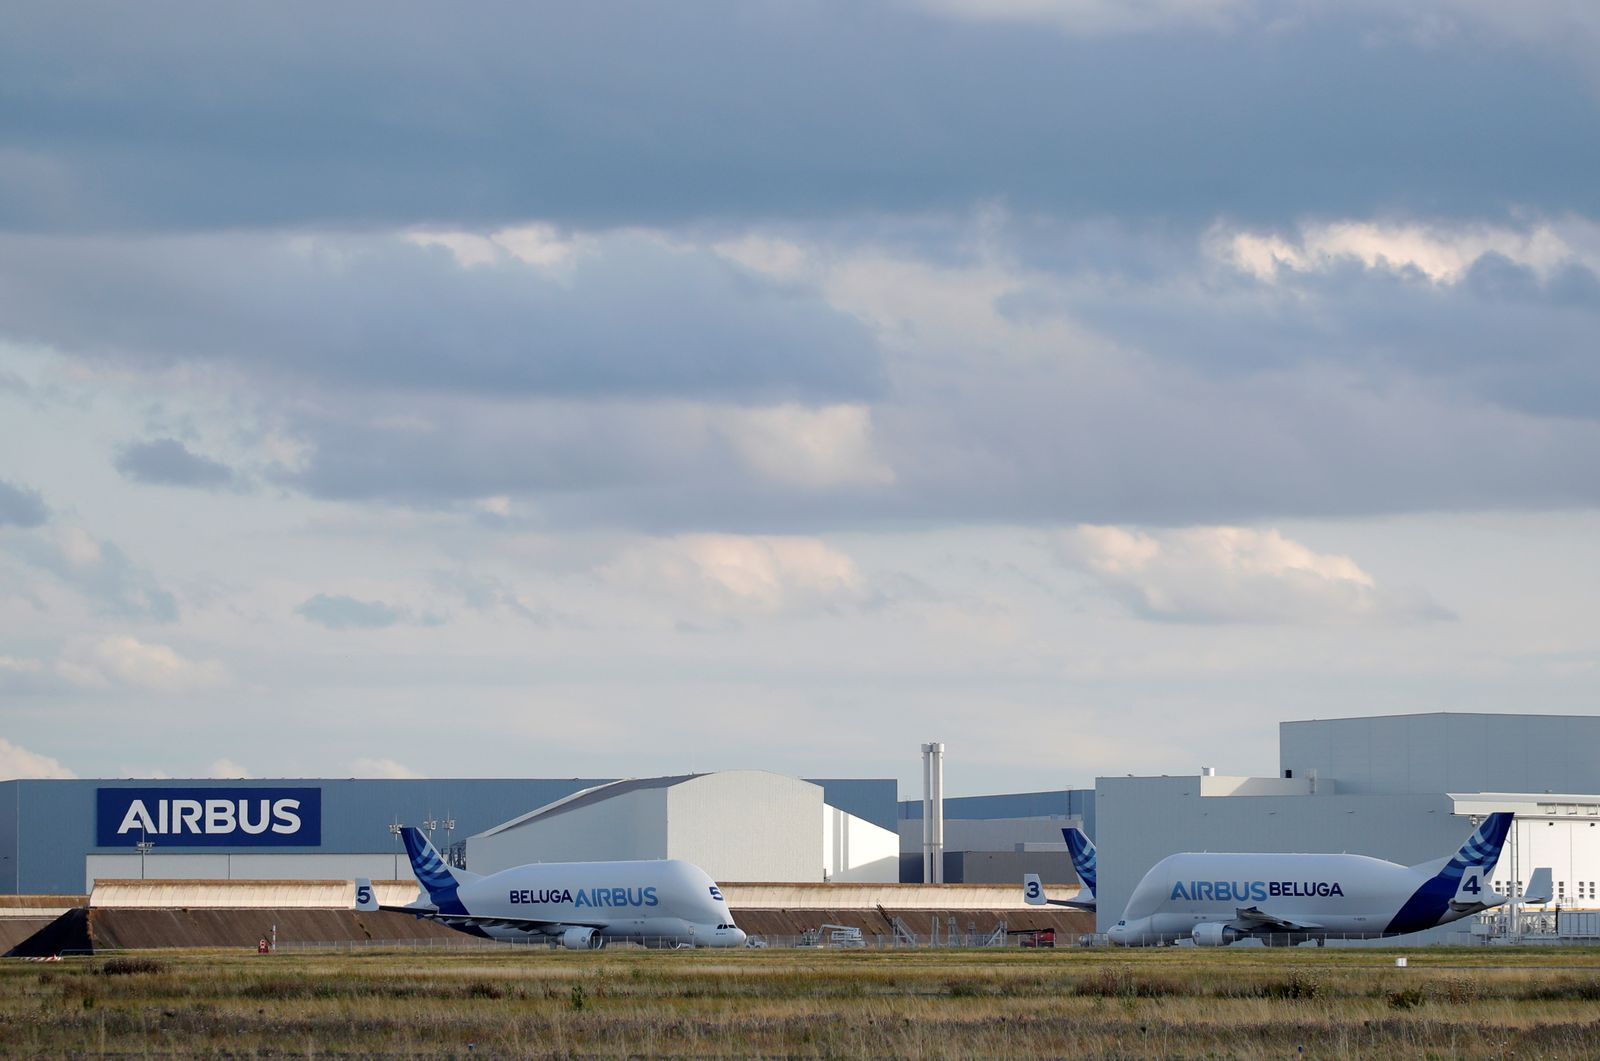 Airbus Beluga transport planes at the Airbus factory in Blagnac near Toulouse